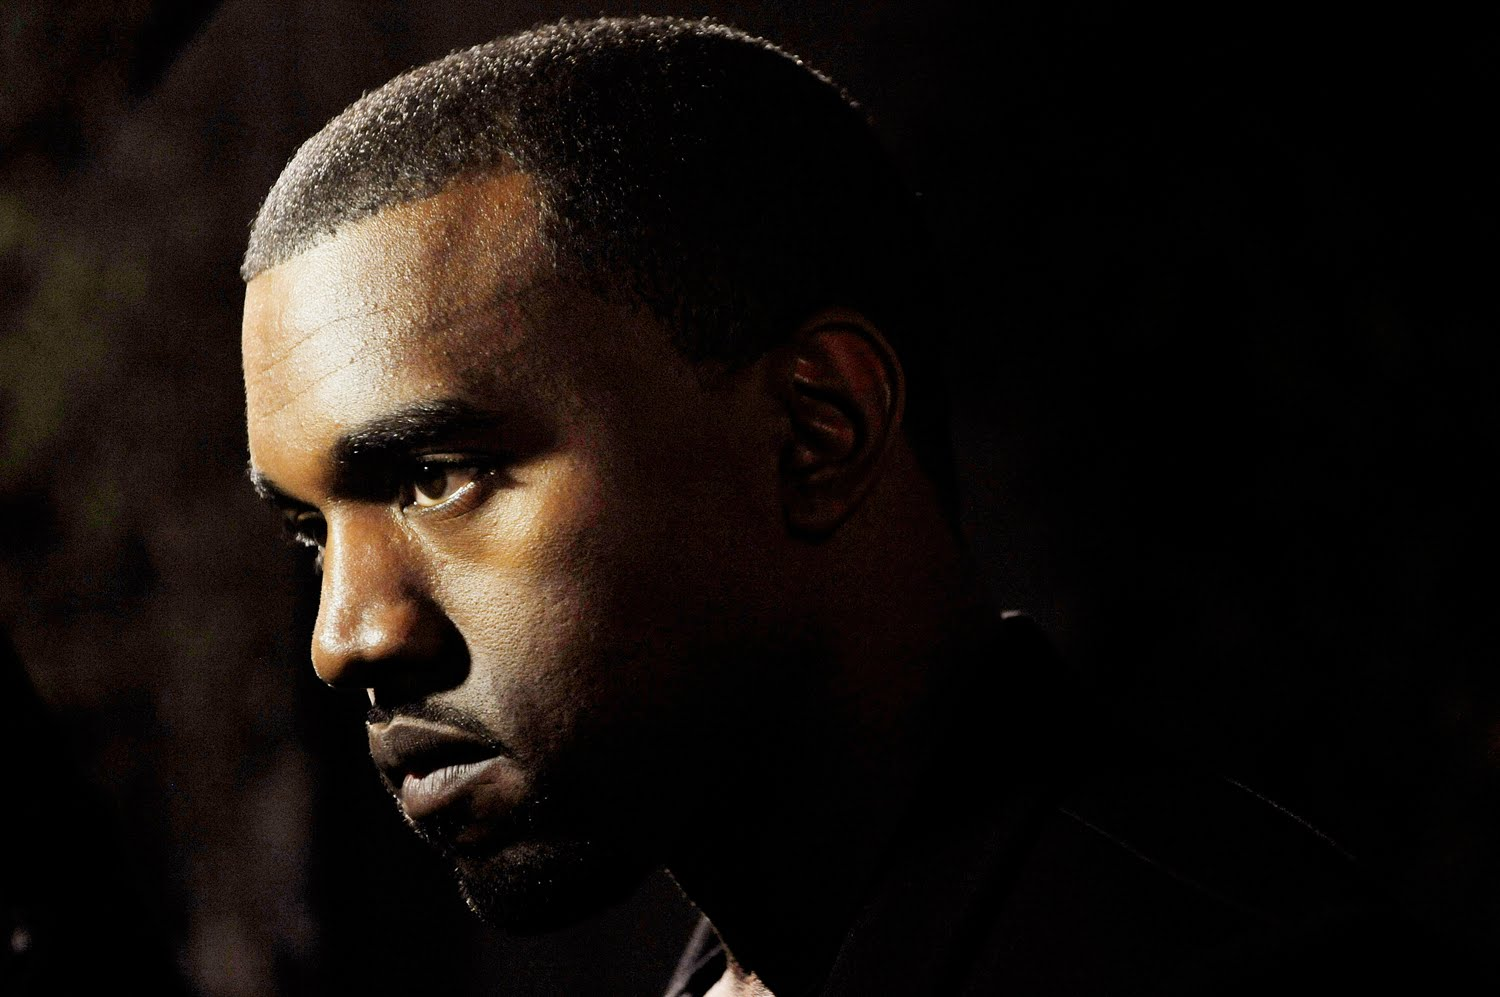 Kanye West Gets Wasted In The Club In Paris